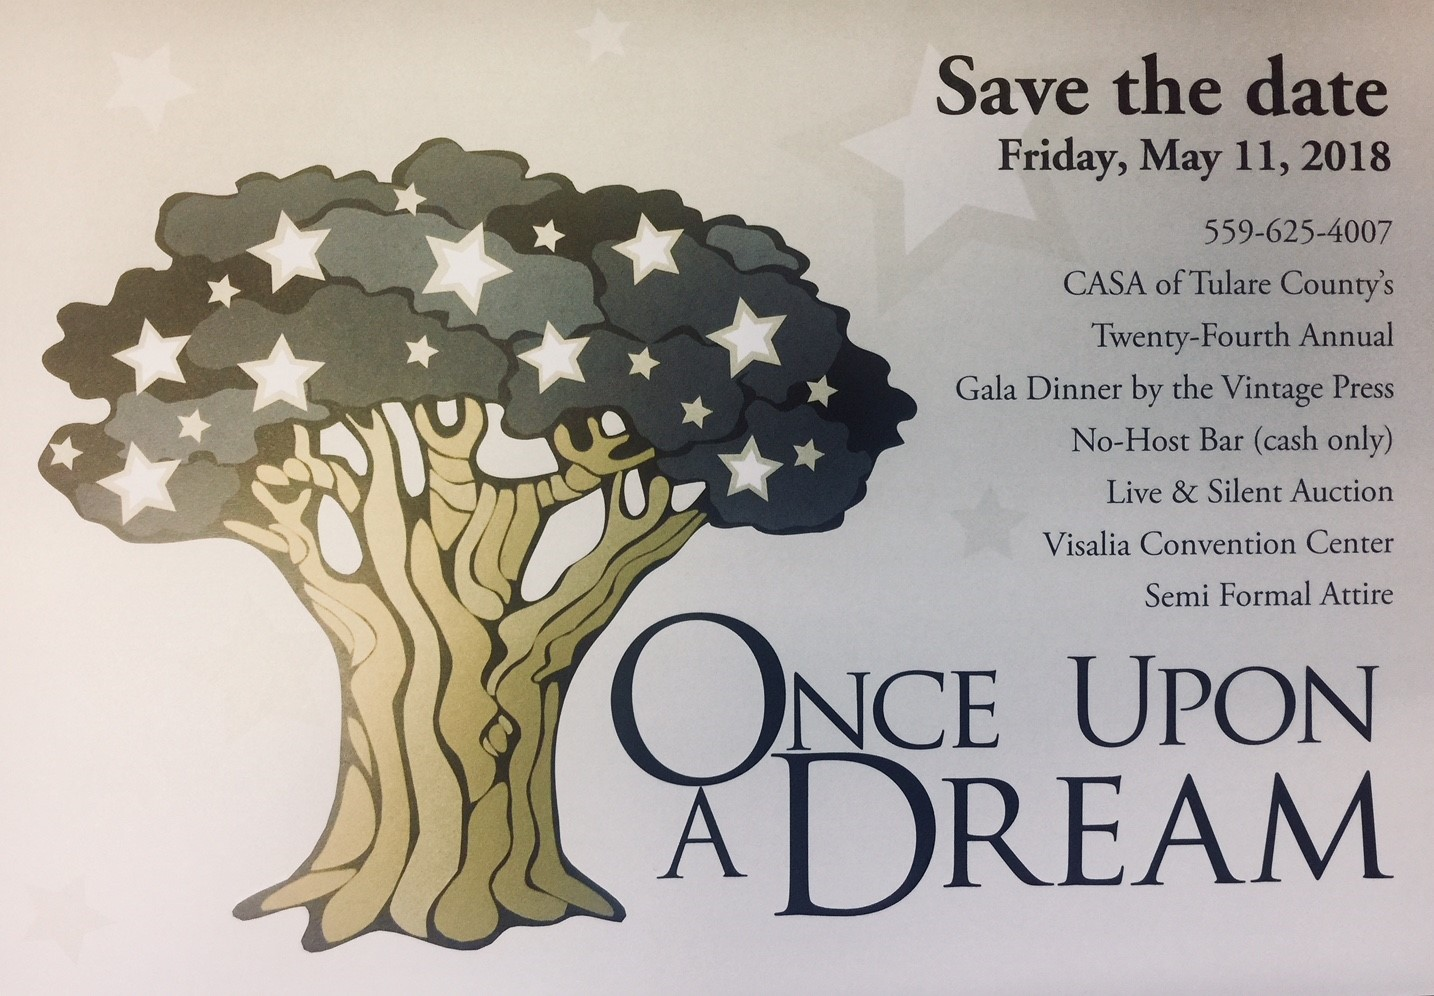 CASA of Tulare County 24th Annual Once Upon a Dream Event